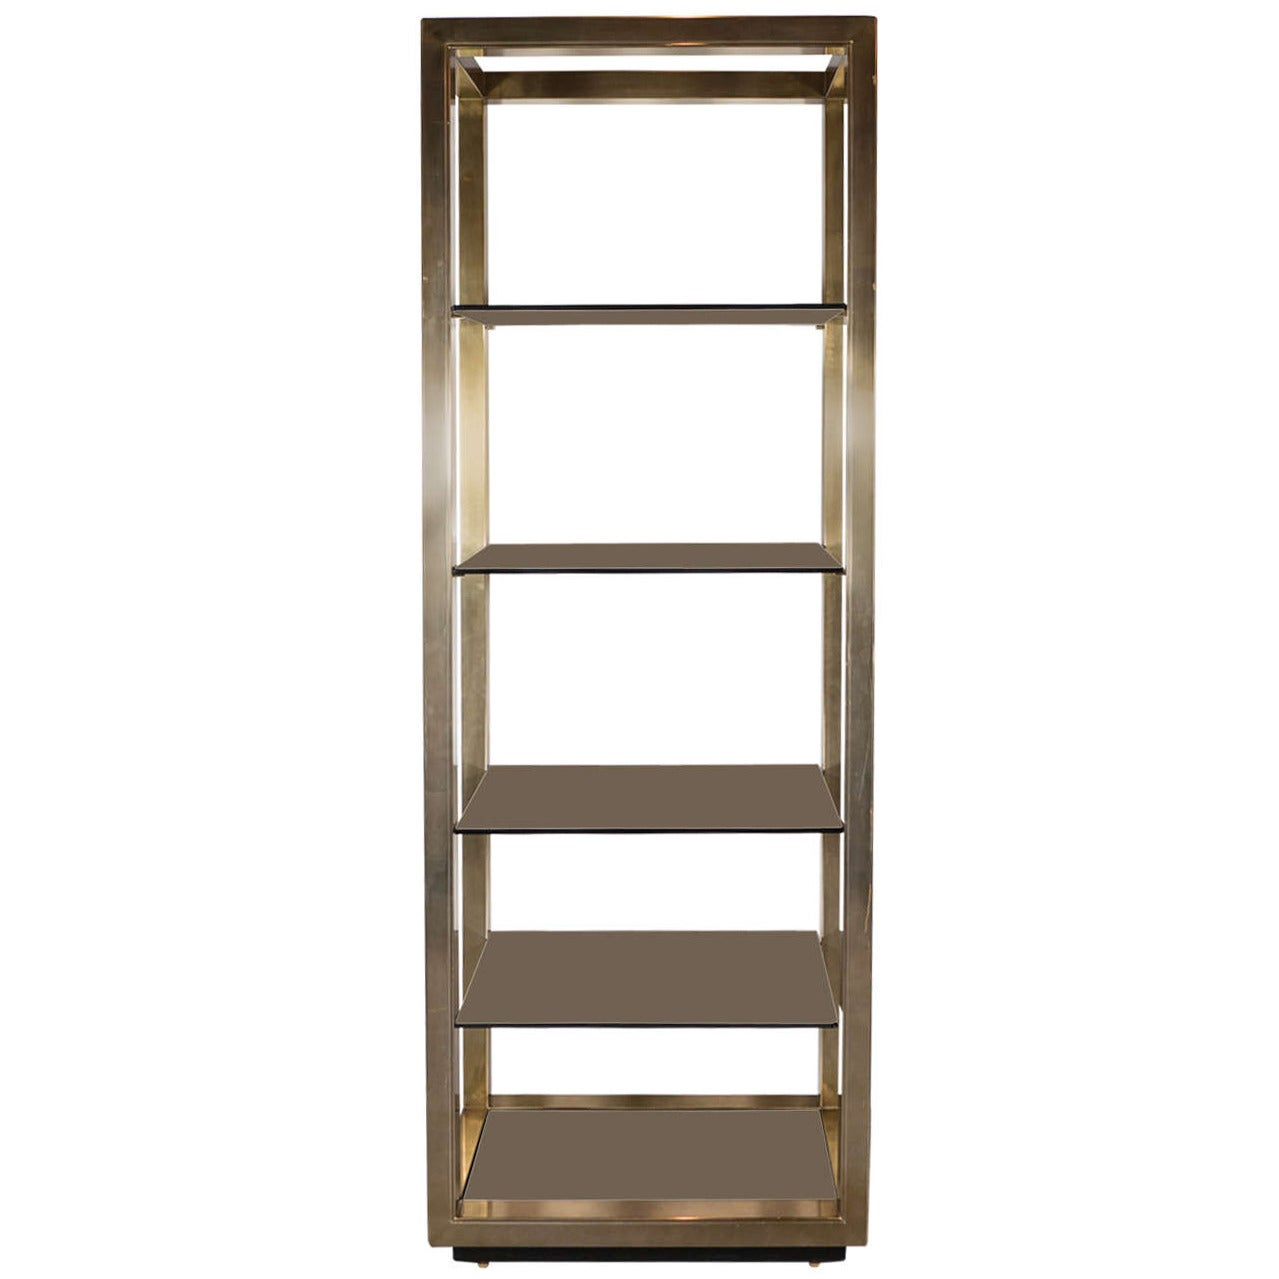 exceptional mid century modernist brass etagere by mastercraft for sale at 1stdibs. Black Bedroom Furniture Sets. Home Design Ideas